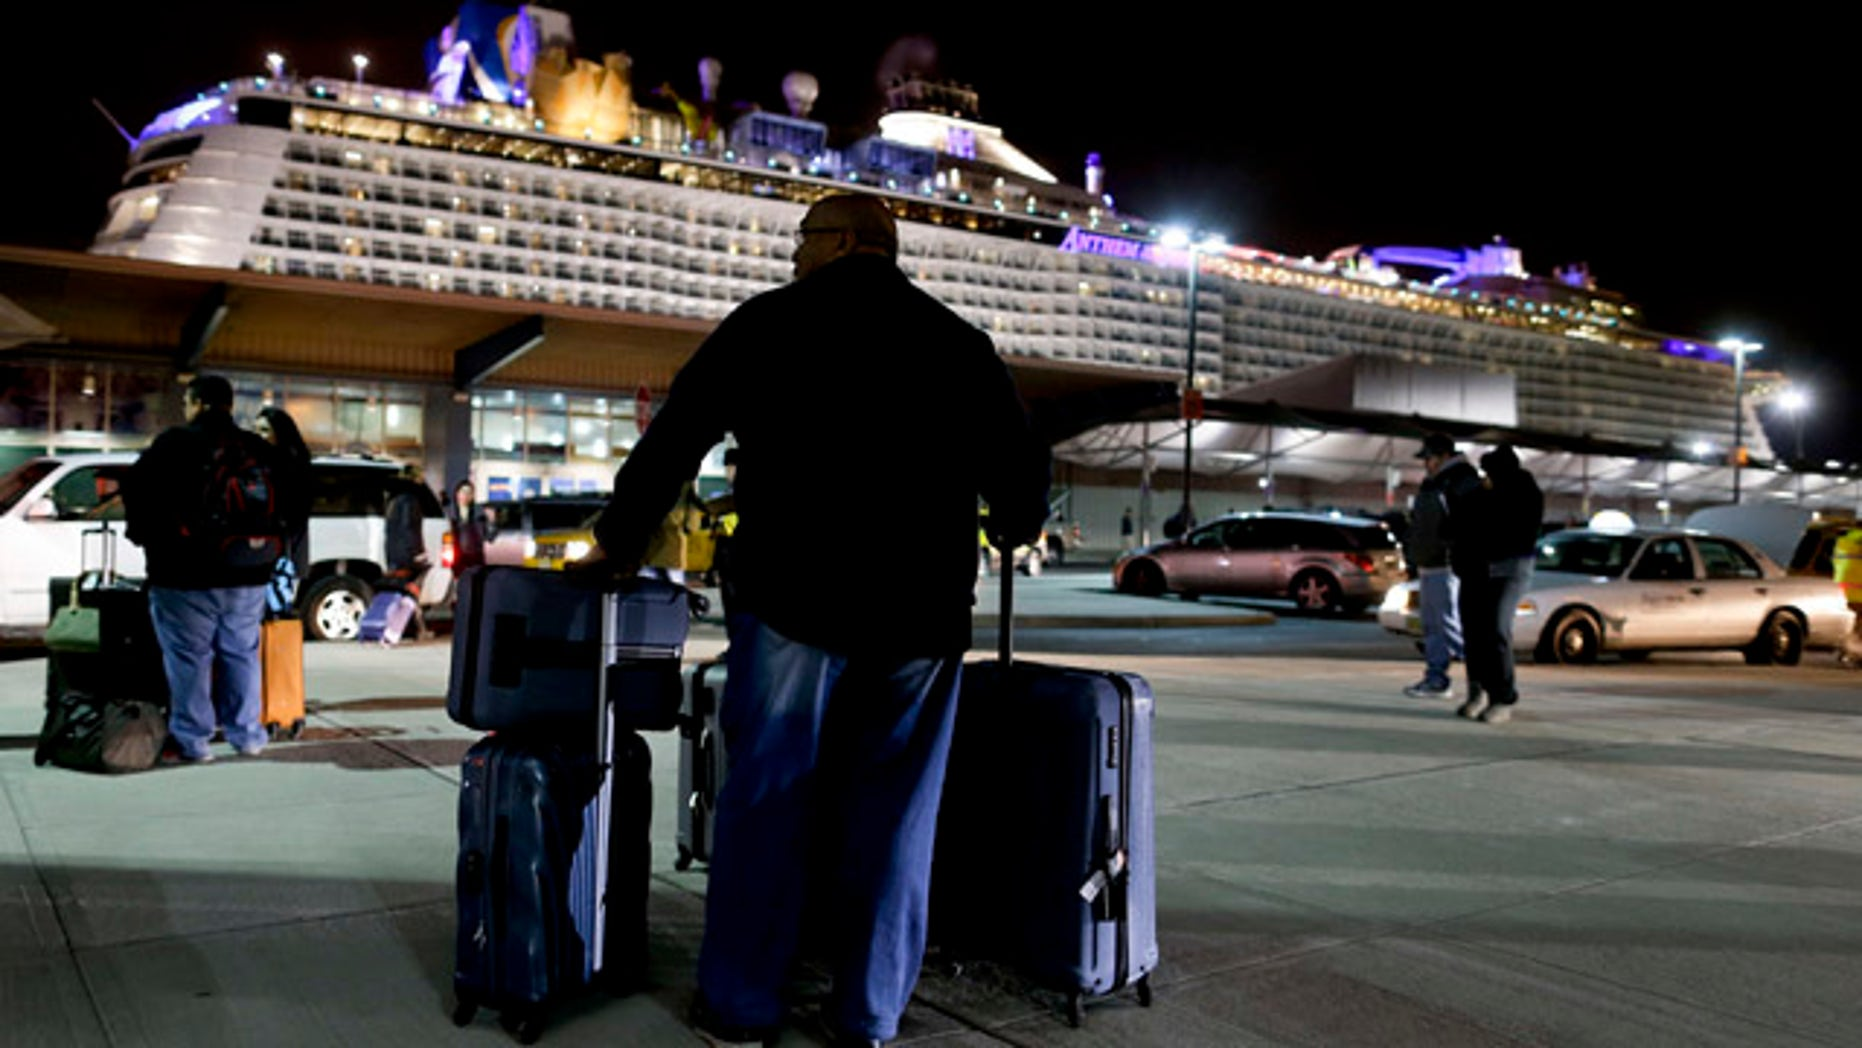 Feb. 10, 2016: A passenger from the Royal Caribbean cruise ship, Anthem of the Seas, awaits transportation after arriving at Cape Liberty cruise port in Bayonne, N.J. (AP Photo/Julie Jacobson)